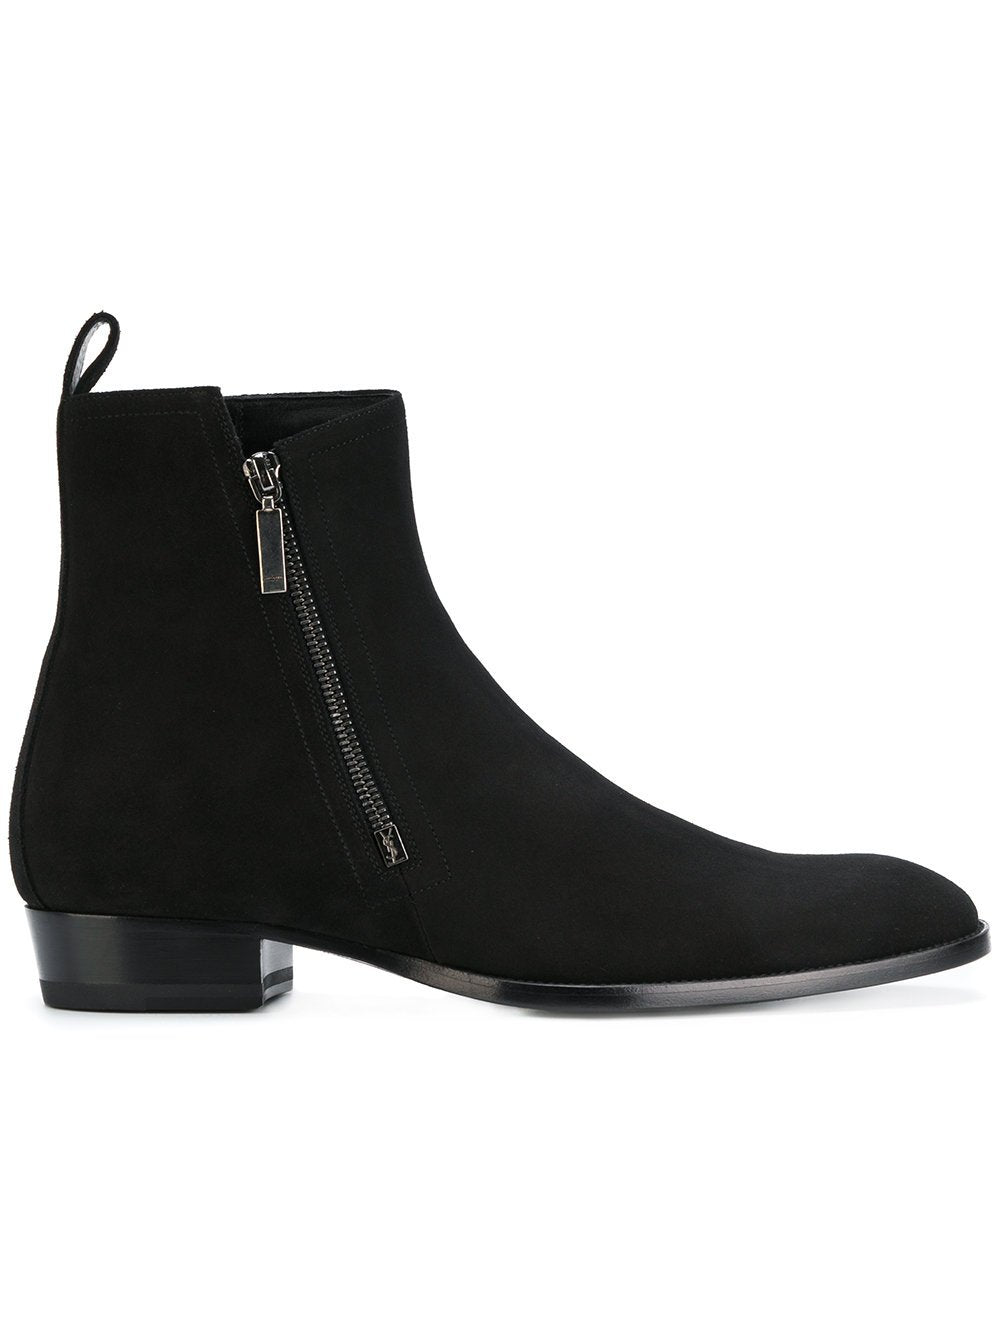 Saint Laurent Wyatt   Boots Black